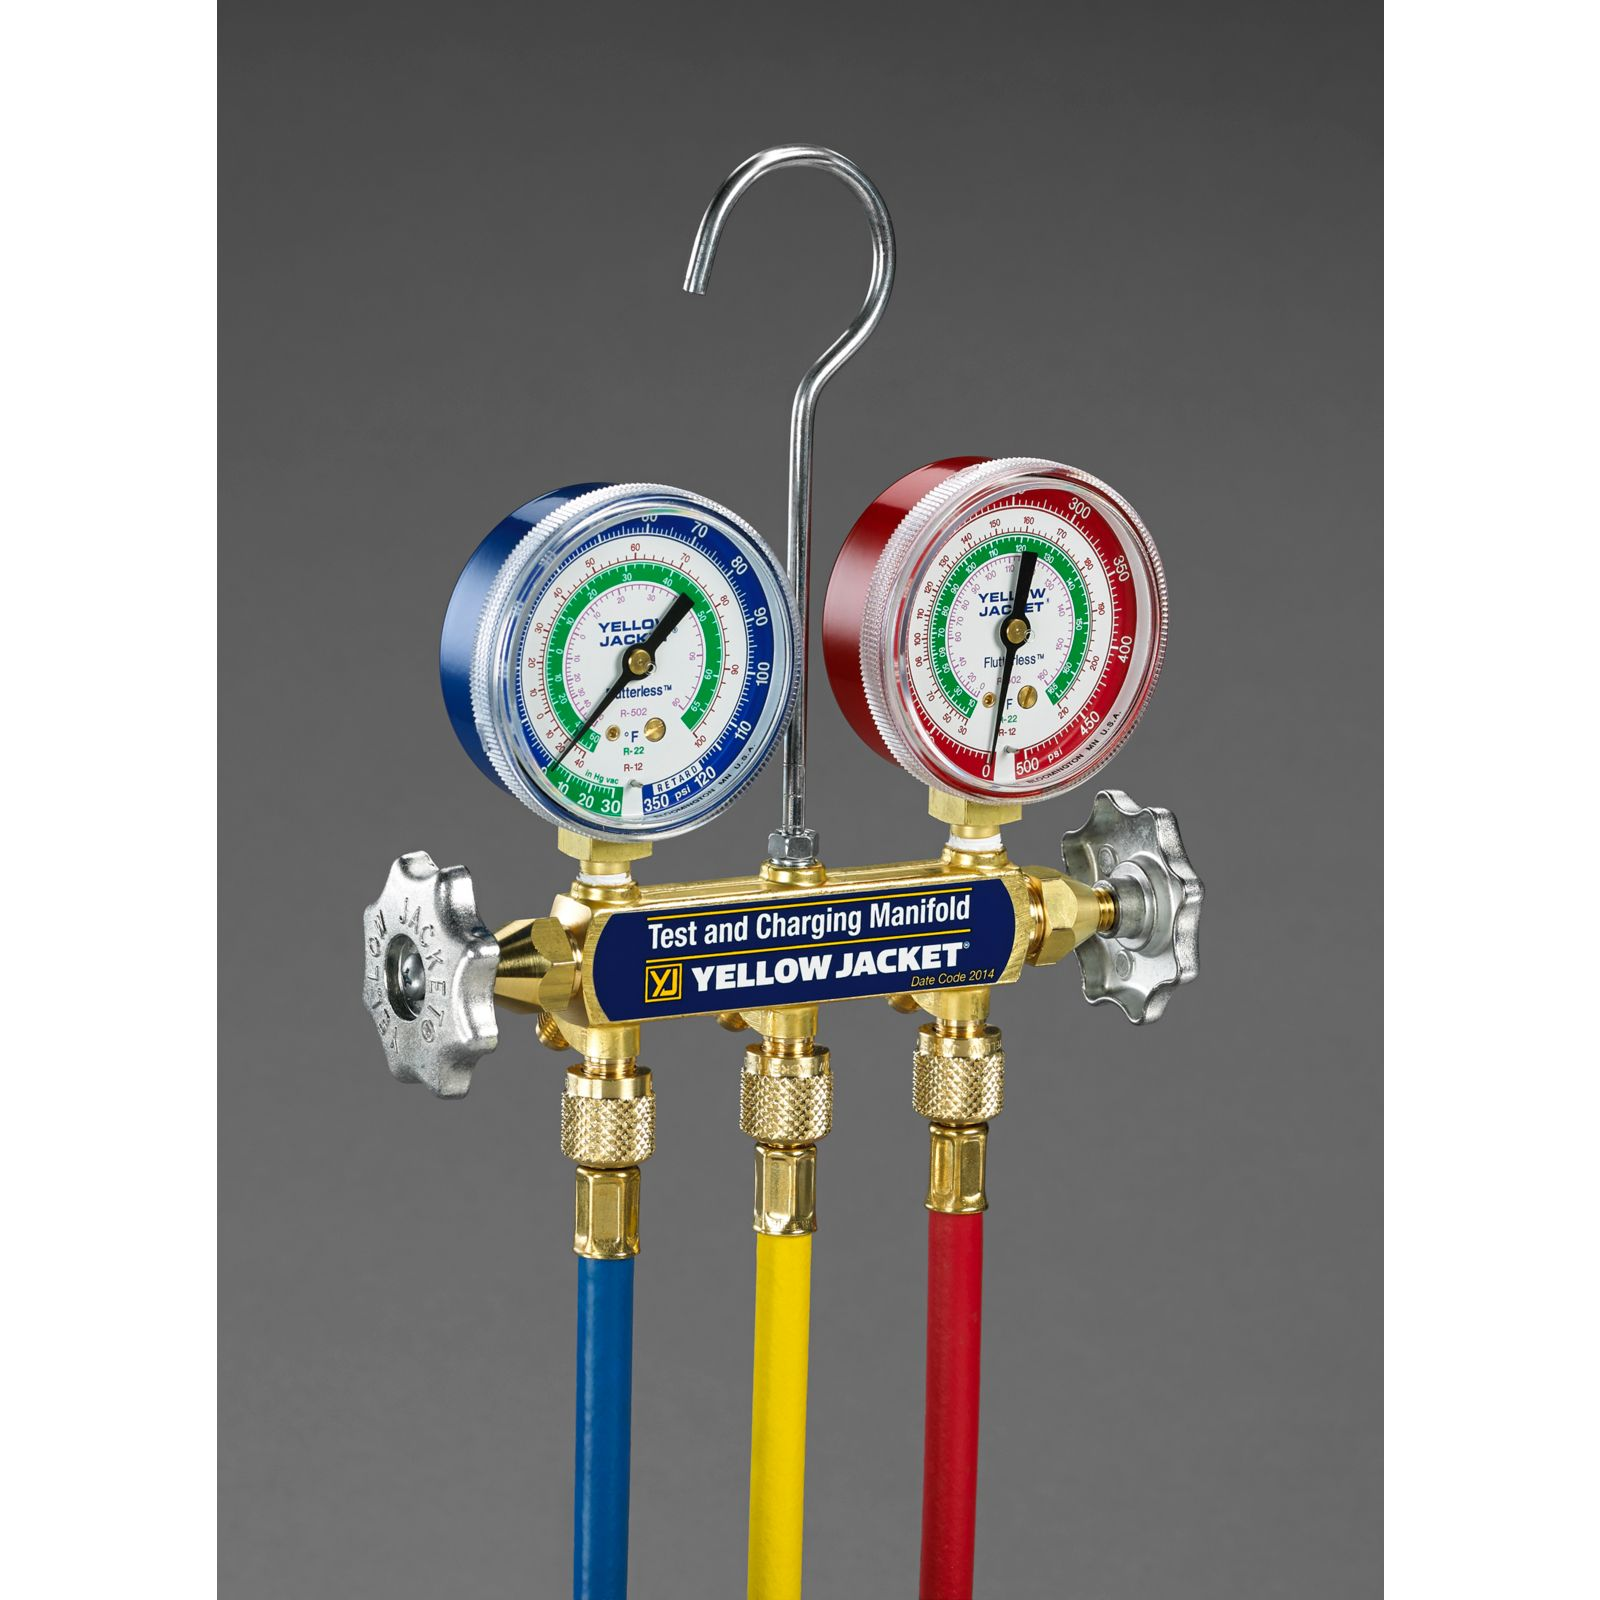 "Yellow Jacket 41215 - Series 41 Manifold with 2-1/2"" Gauges with Plus II Standard Fitting Hoses 5'"